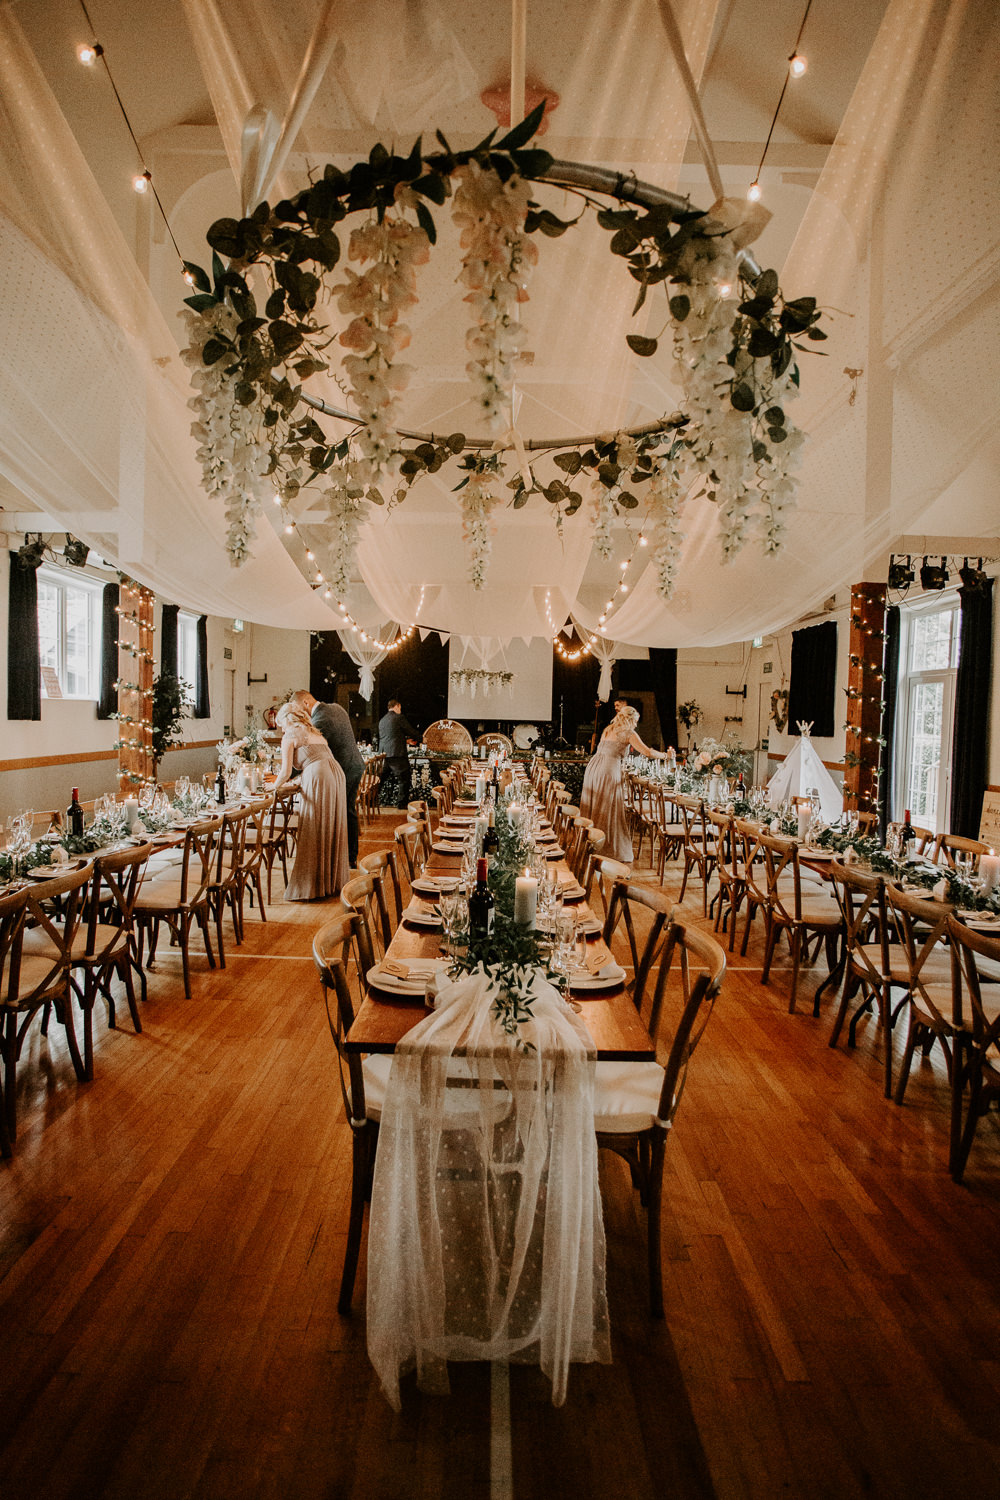 Floral Hoop Hanging Chandelier Draping Ceiling Willingale Village Hall Wedding Photographer Liam Gillan